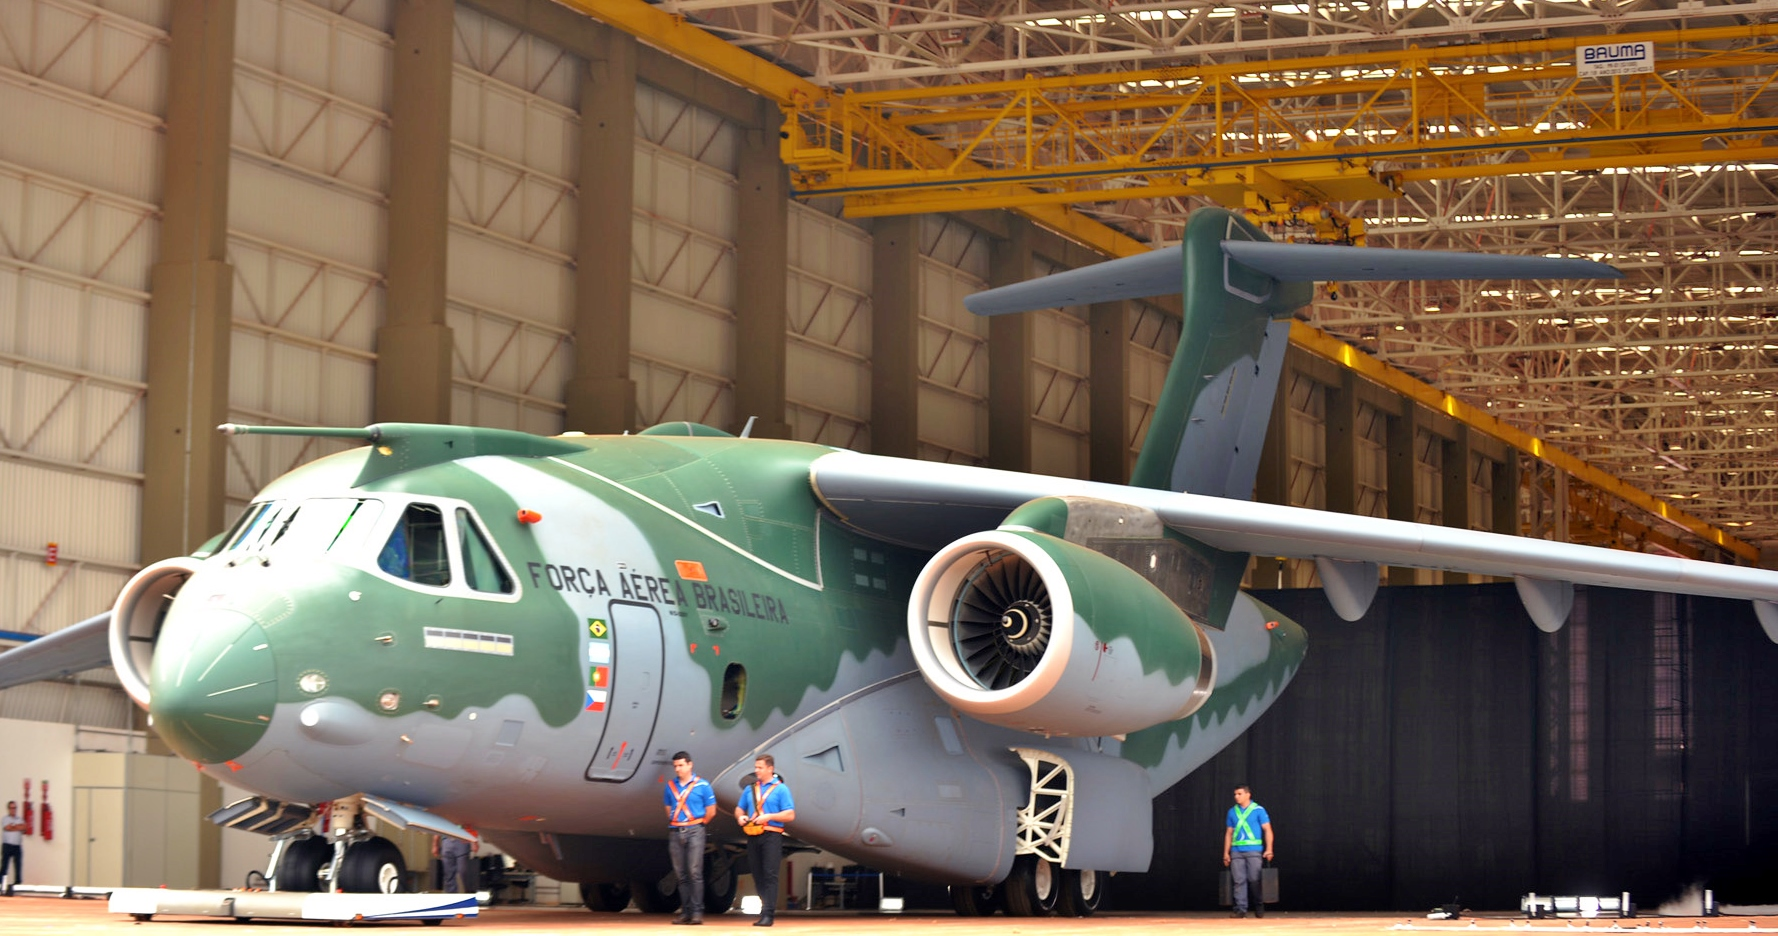 The heaviest Brazilian cargo airplane was tested by airdrop